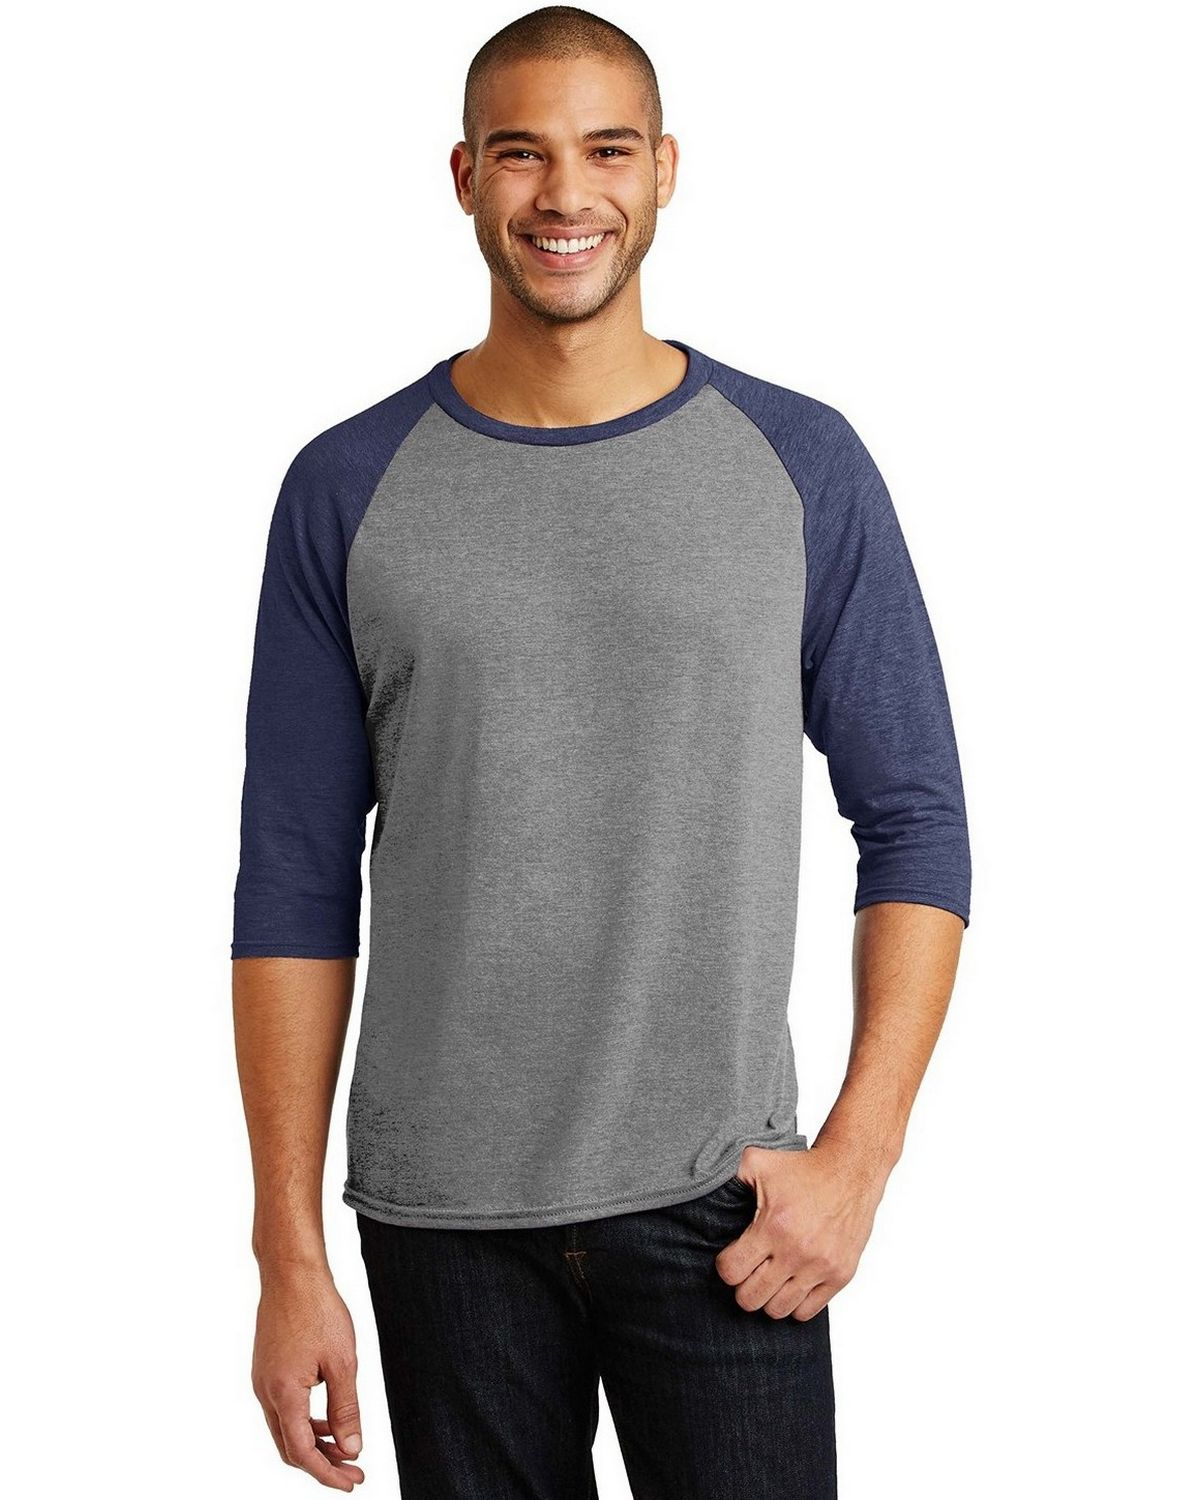 Anvil AN6755 Tri-Blend 3/4-Sleeve Raglan Tee - Heather Grey/ Heather Red - M AN6755